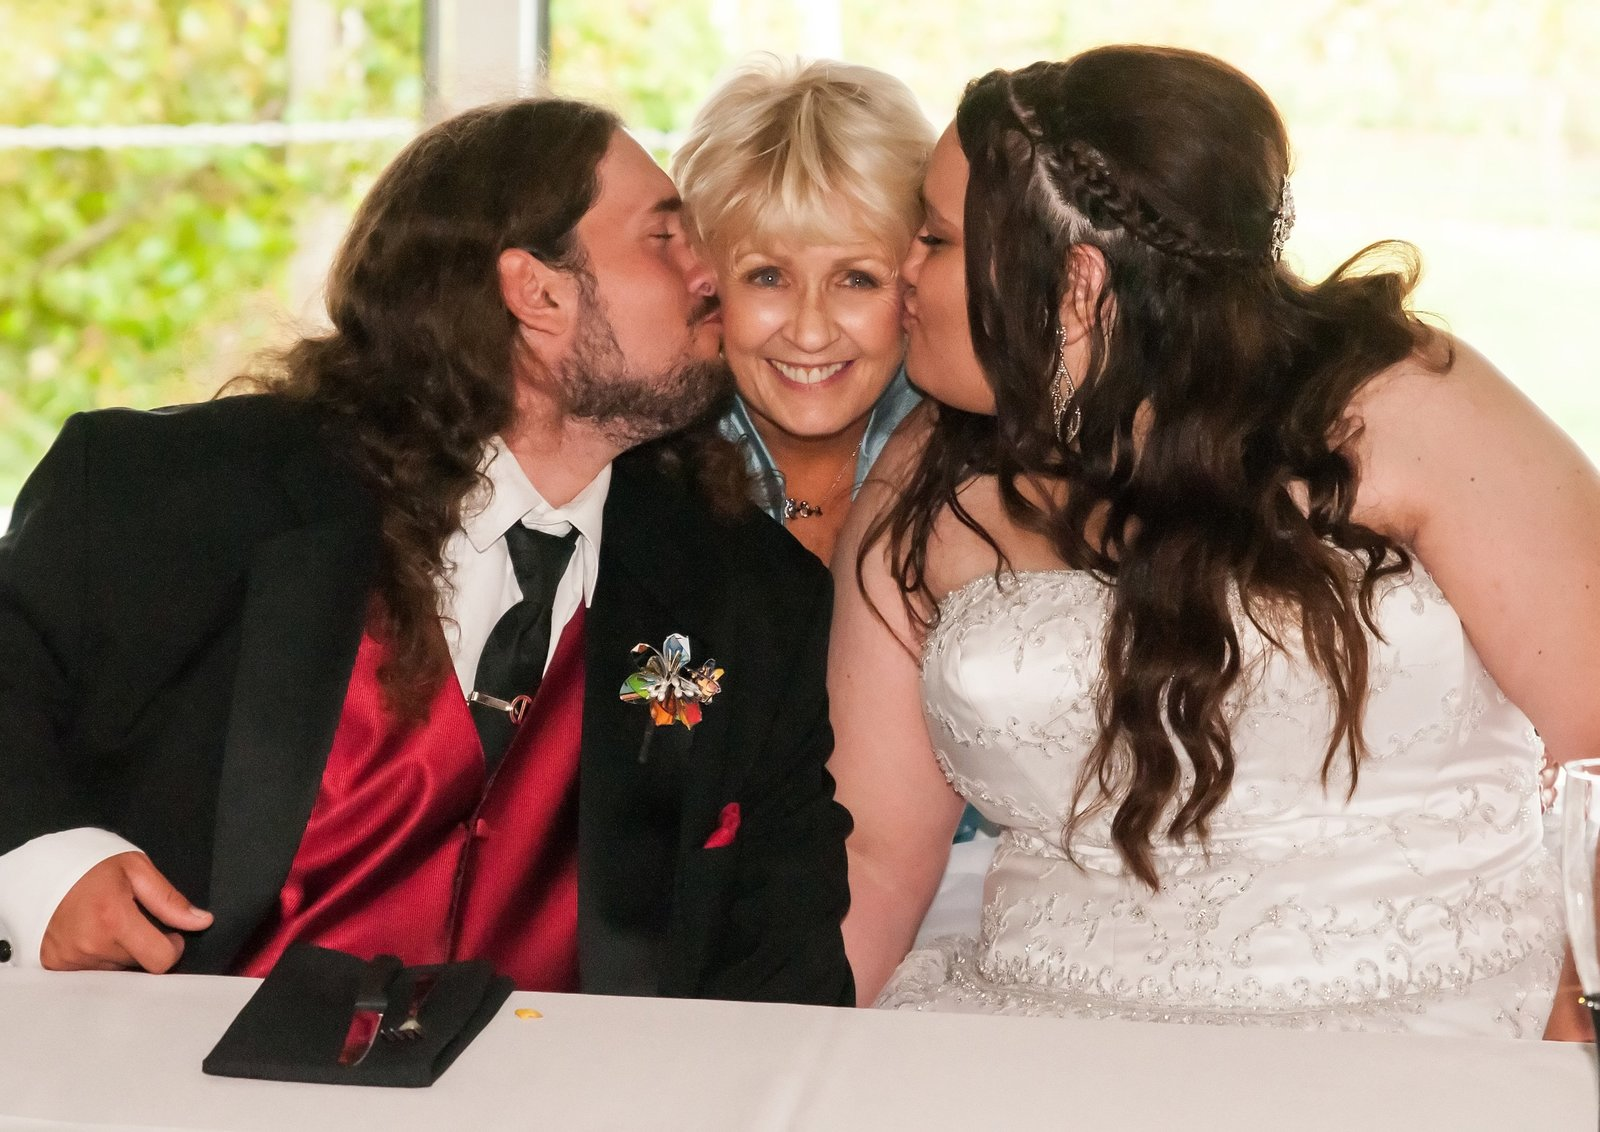 Bride and Groom give her mom a big kiss during their reception at White Oaks Winery near Peoria, Illinois.